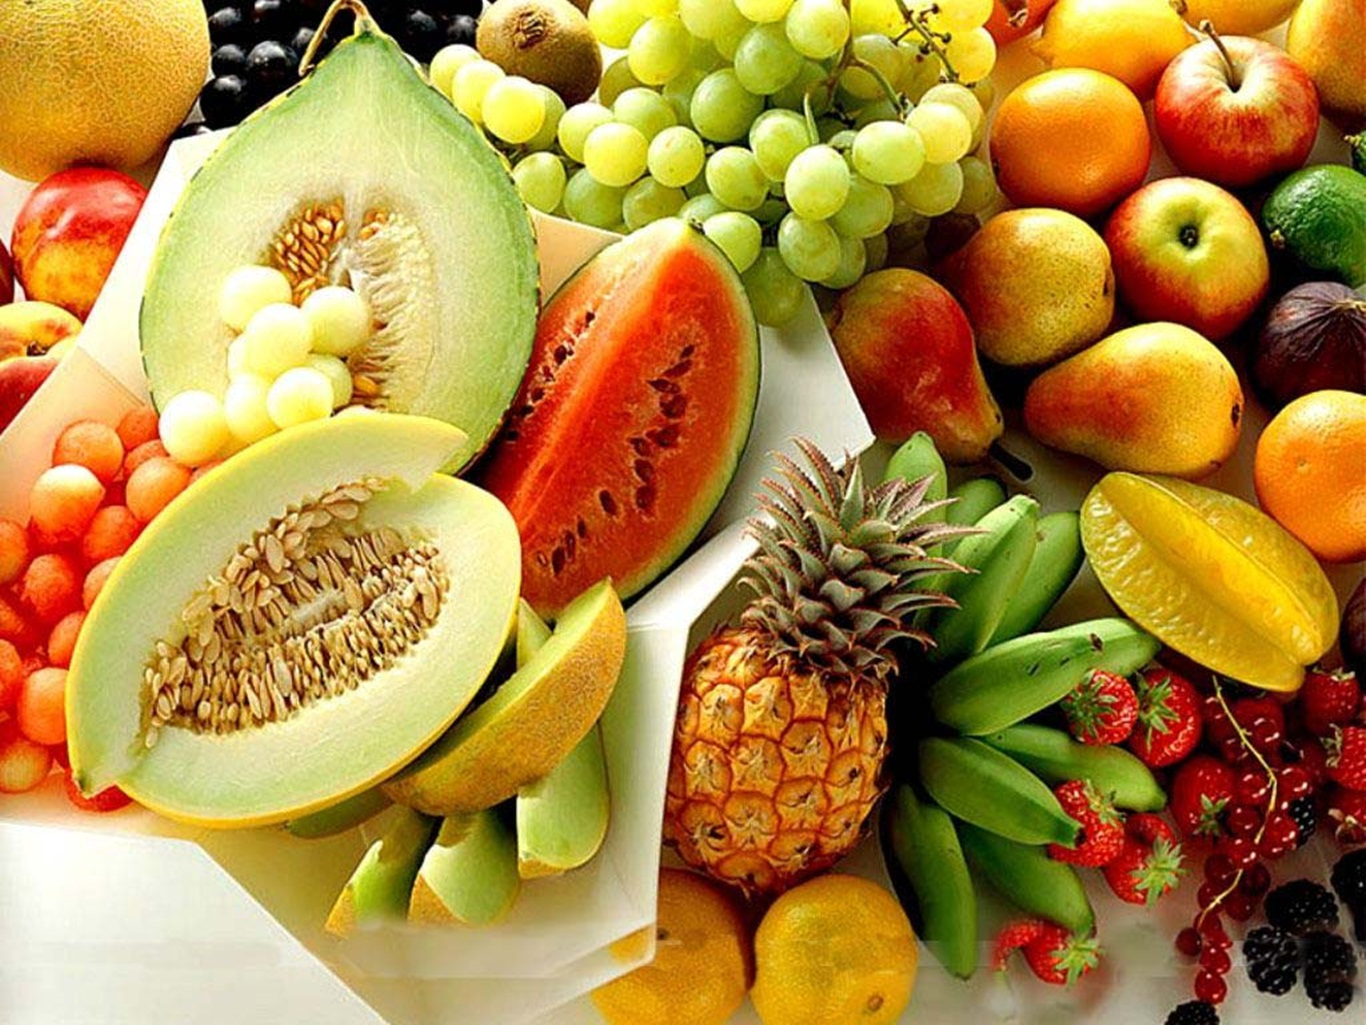 All the fruits wallpaper - Fruits Wallpapers 20 Photos 18